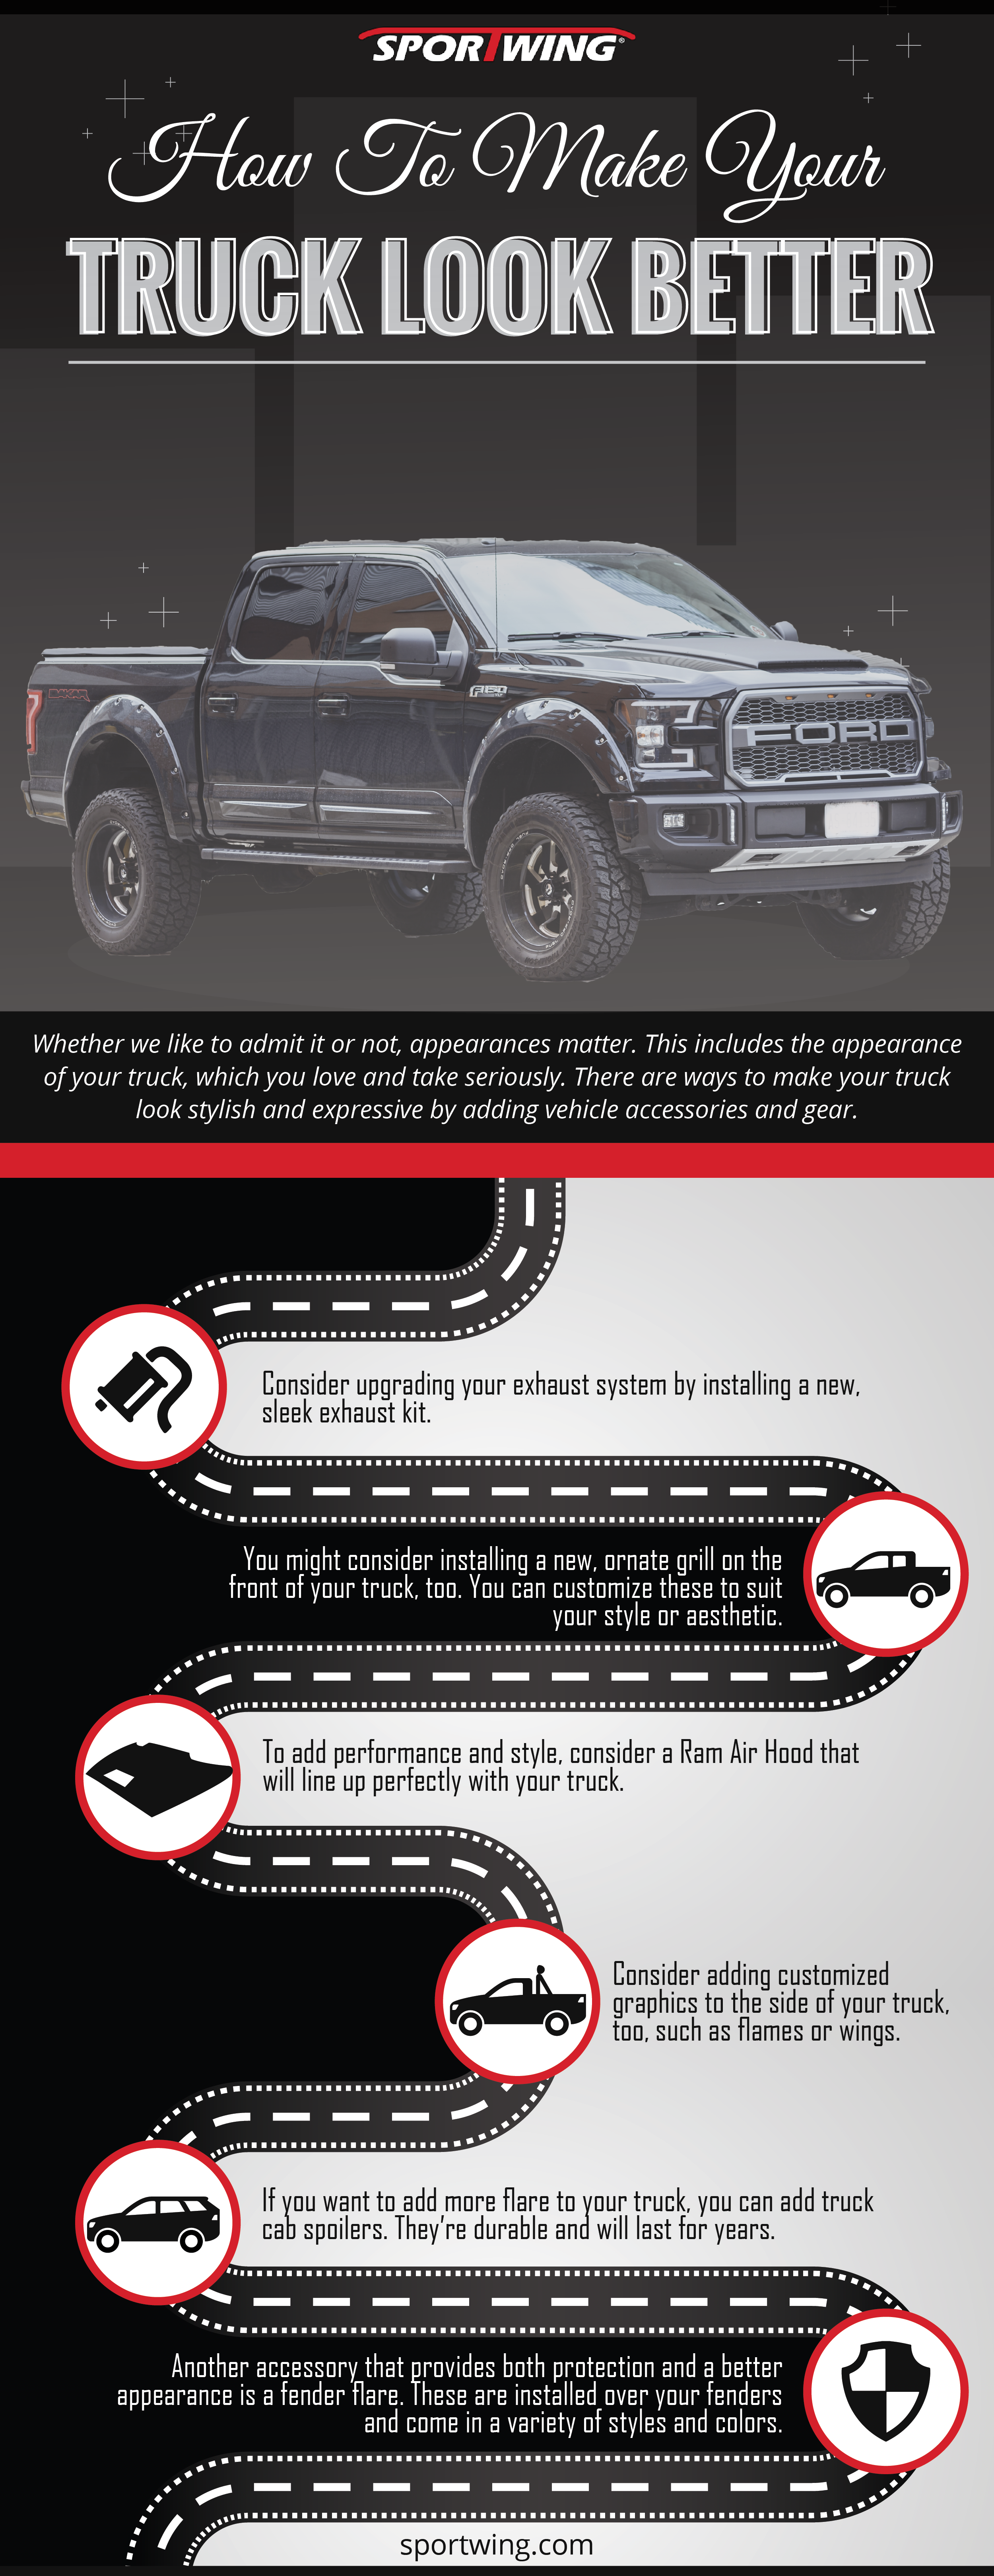 How To Make Your Truck Look Better Infographic